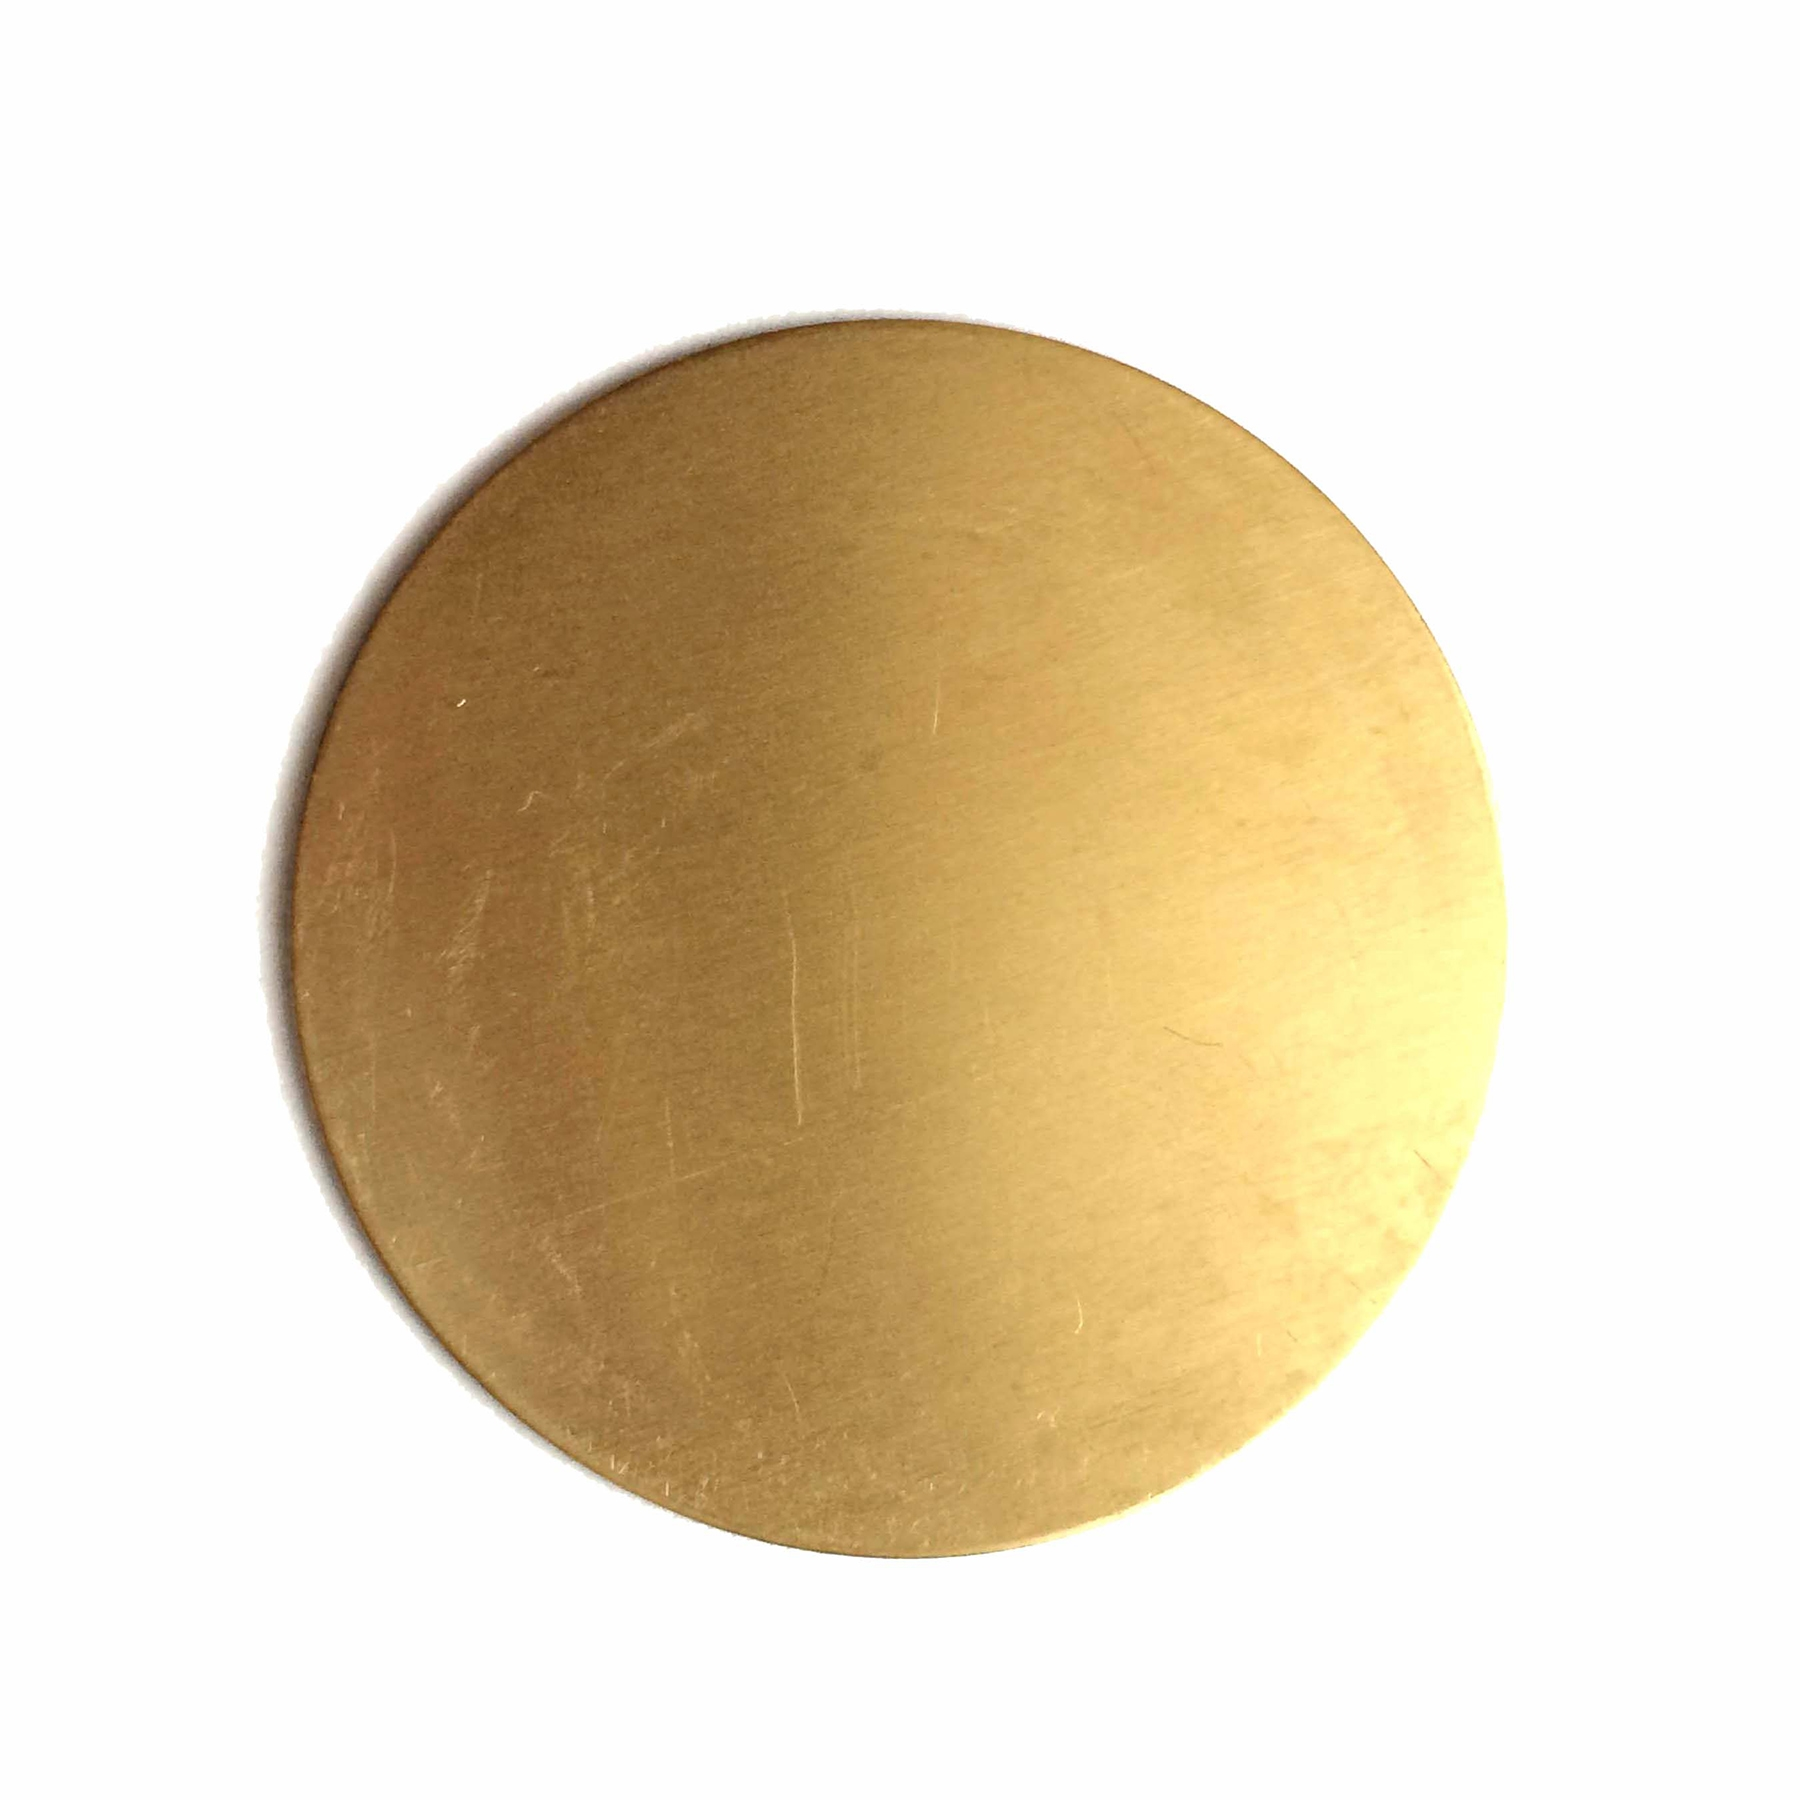 brass base, round base, raw brass, base, 38mm, round, circle, brass stamping, blank, unplated brass, bezel, us made, nickel free, b'sue boutiques, jewelry findings, vintage supplies, jewelry supplies, jewelry making, brass, stamping, 04886